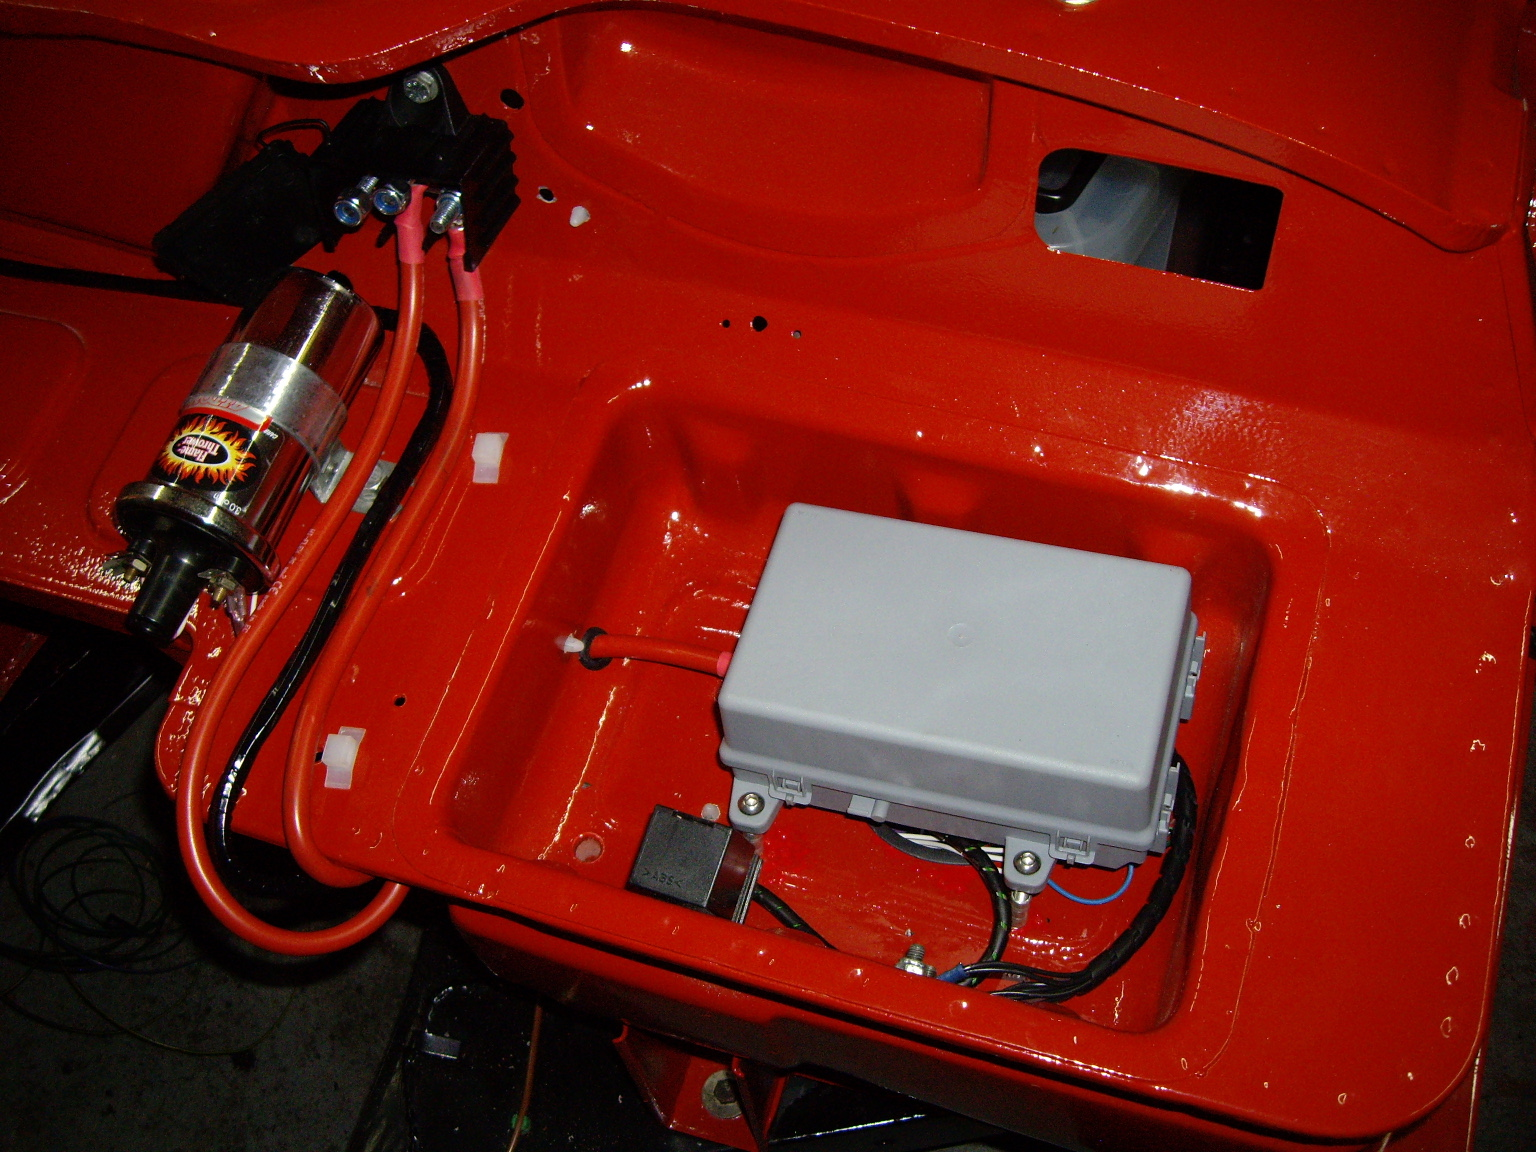 Triumph Spitfire Fuse Box Simple Electrical Wiring Diagram Volvo P1800 Club 1968 In The Photograph Below Is Still